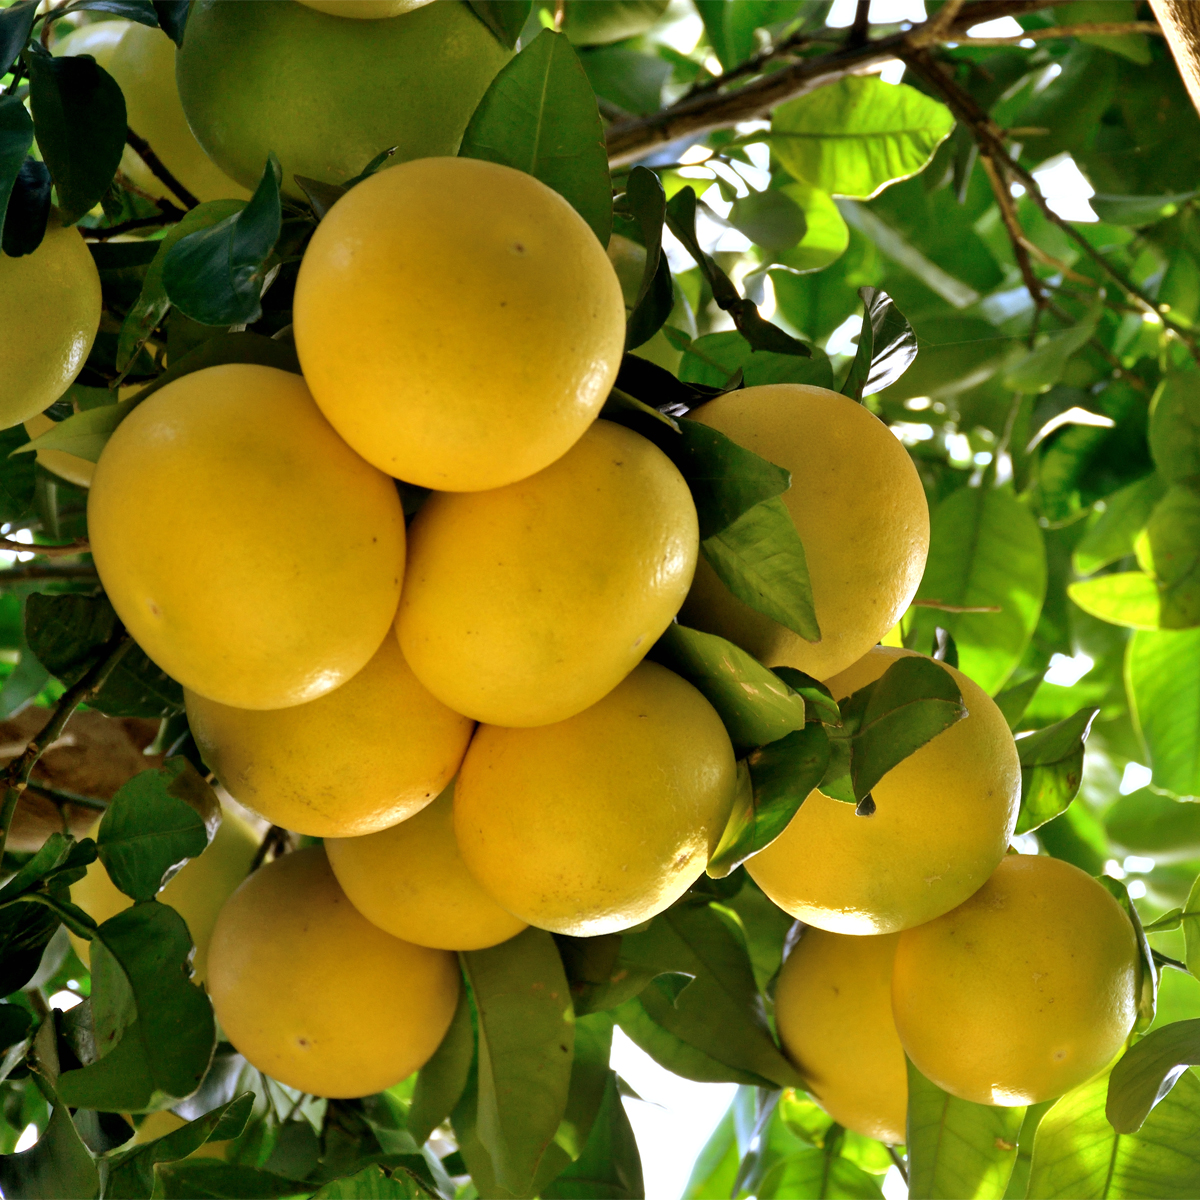 https://www.citrus.com/wp-content/uploads/2018/08/Rio-Red-Grapefruit-Tree-04.jpg